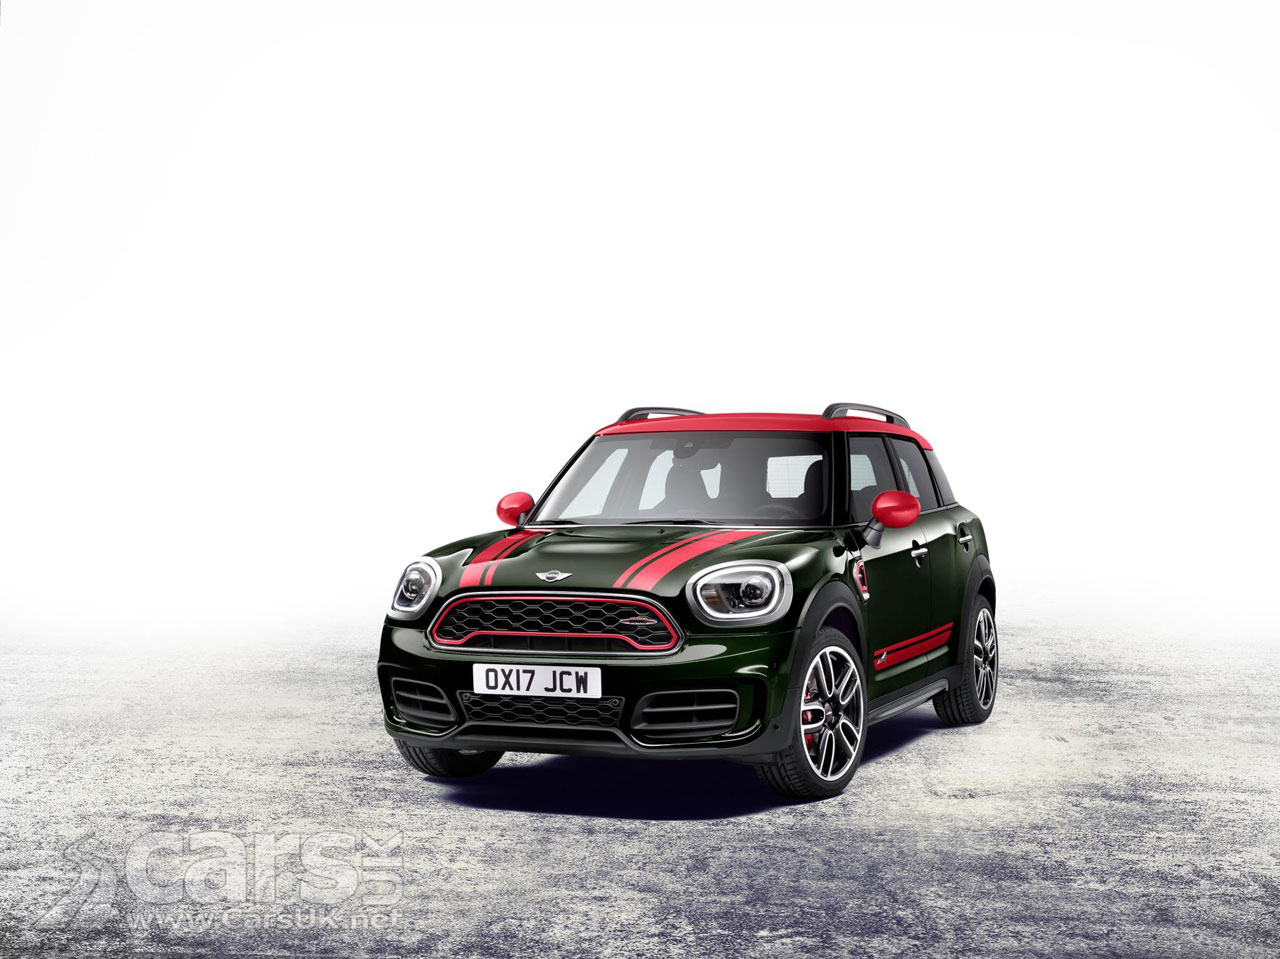 2017 mini countryman jcw arrives with 228bhp enough for a brisk sprint cars uk. Black Bedroom Furniture Sets. Home Design Ideas